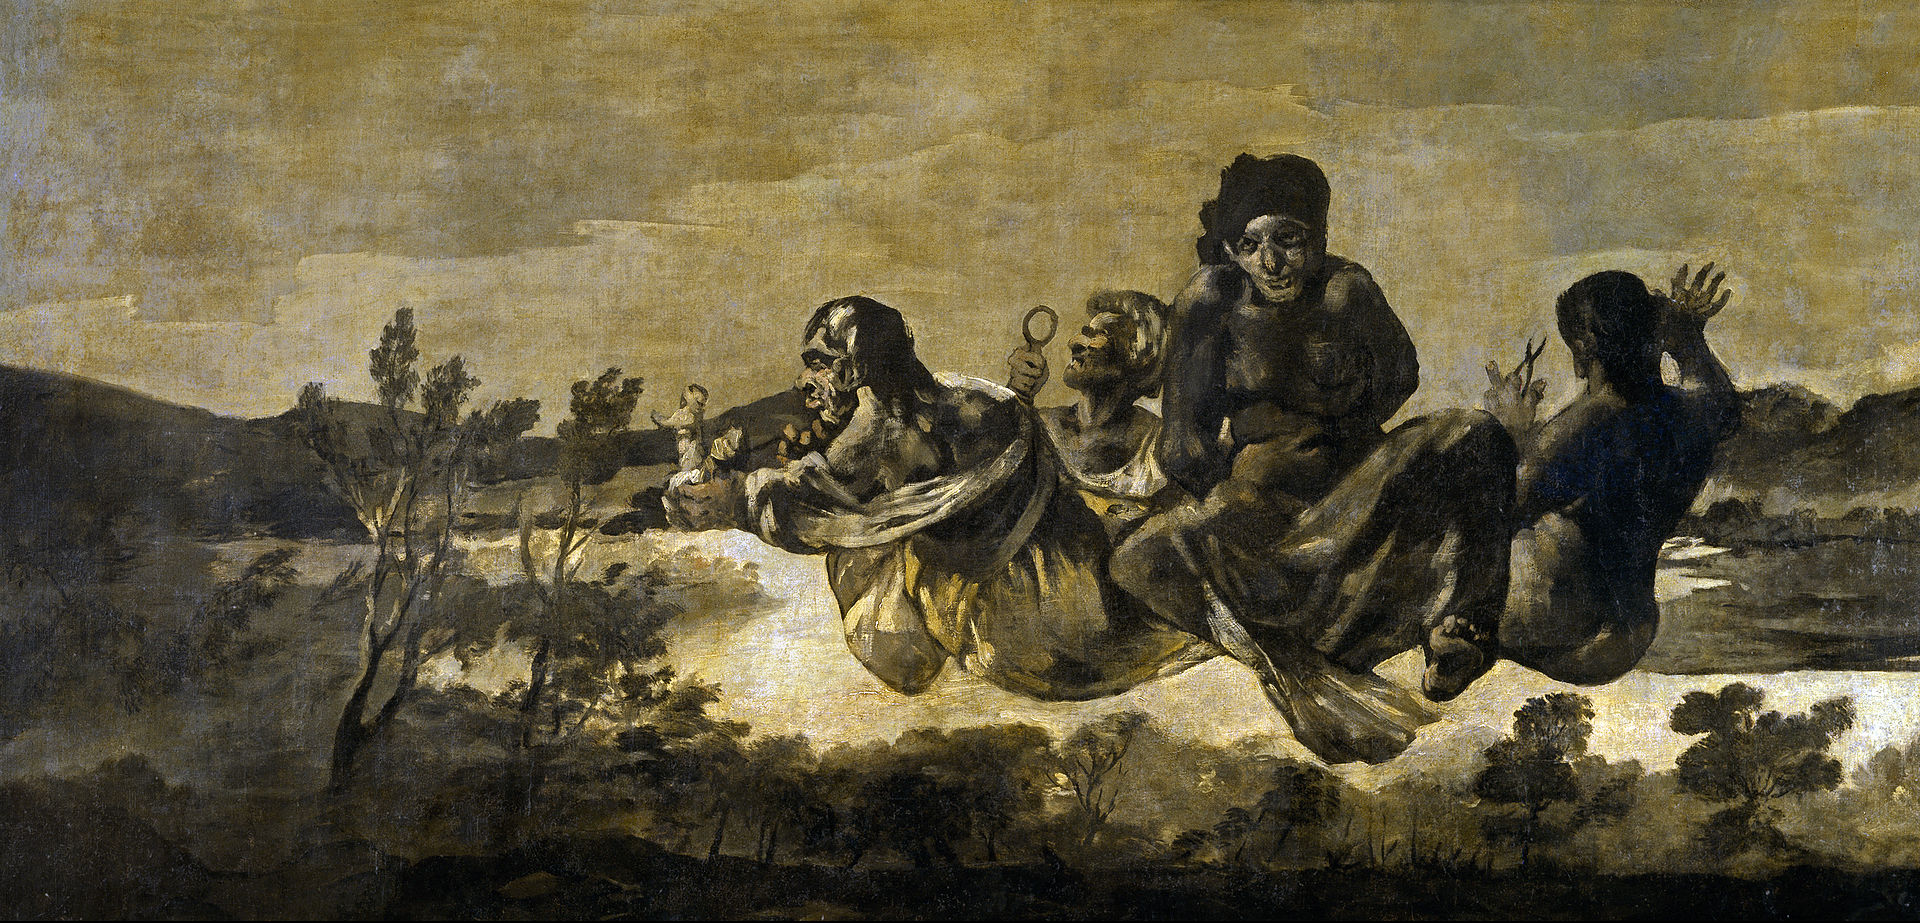 Atropos, the goddess of death, in black and white painting